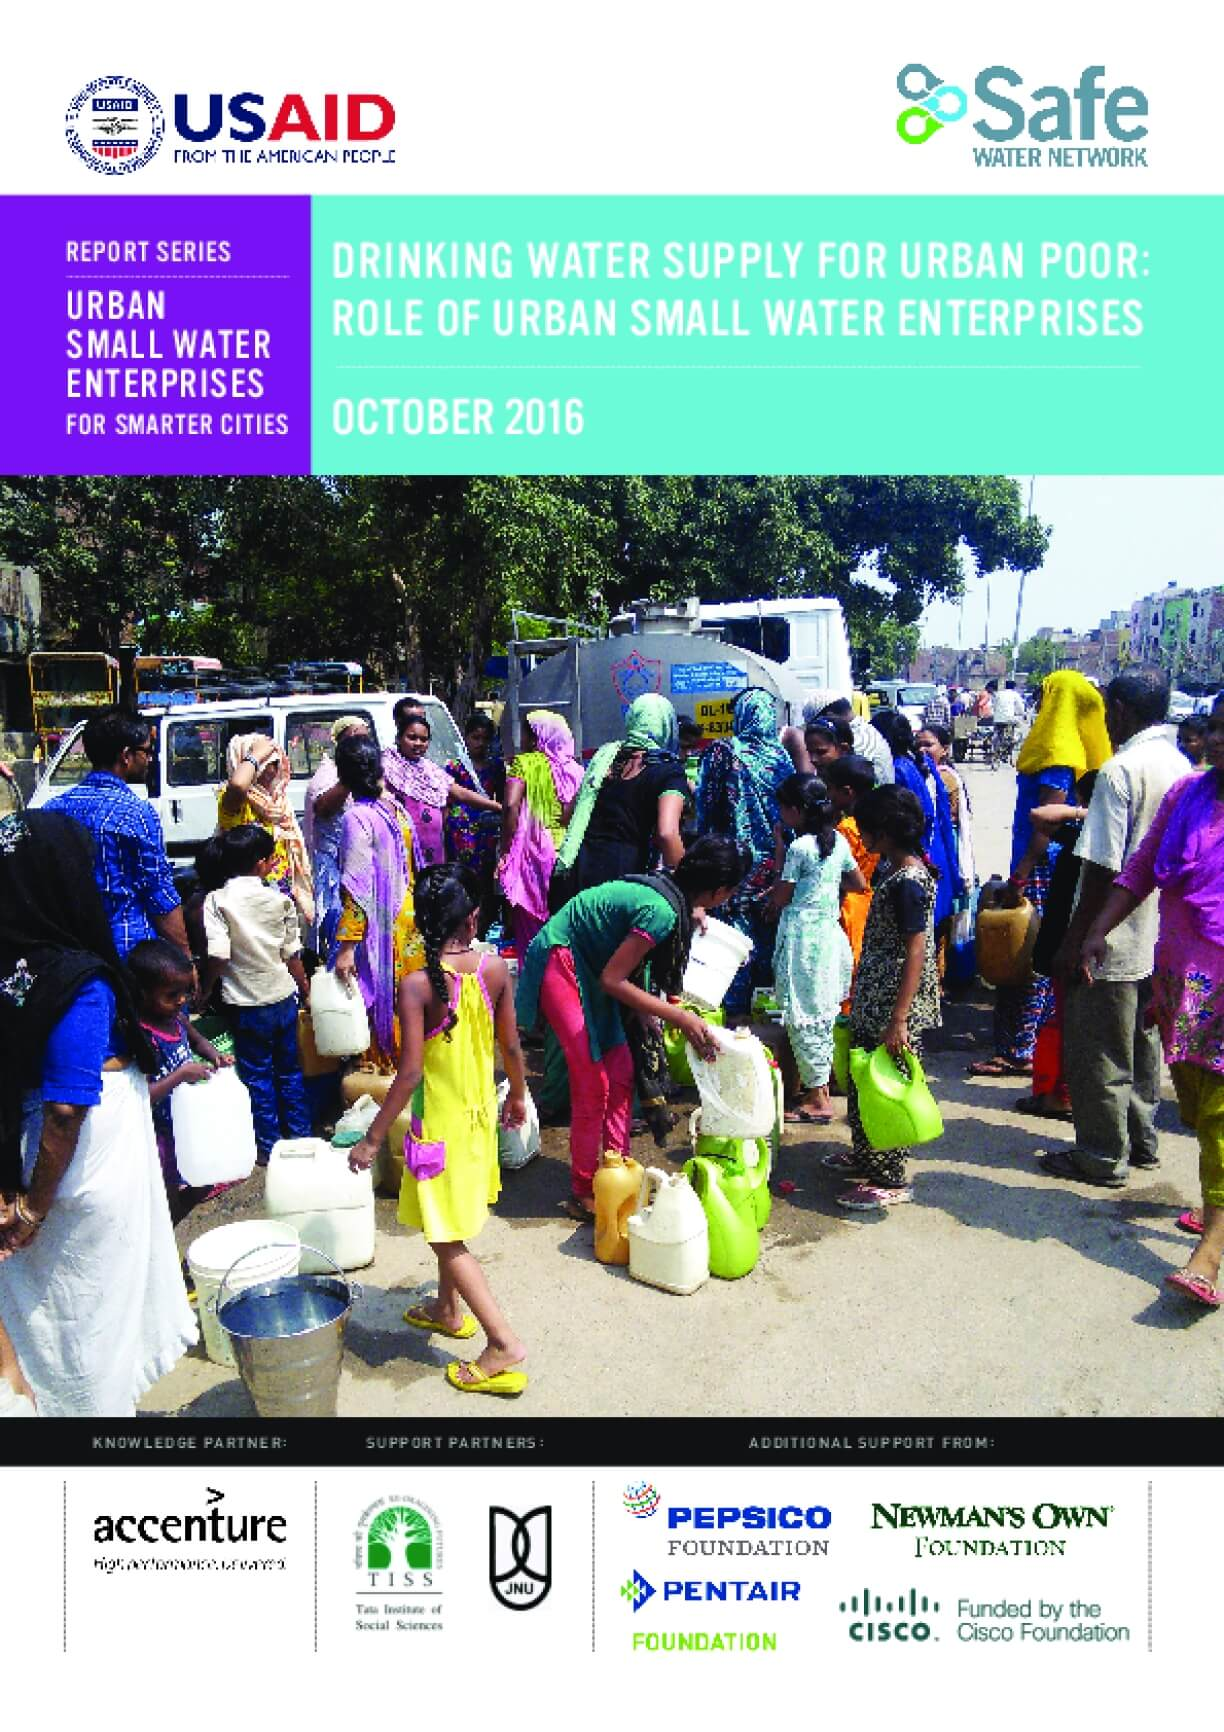 Drinking Water Supply for Urban Poor: Role of Urban Small Water Enterprises